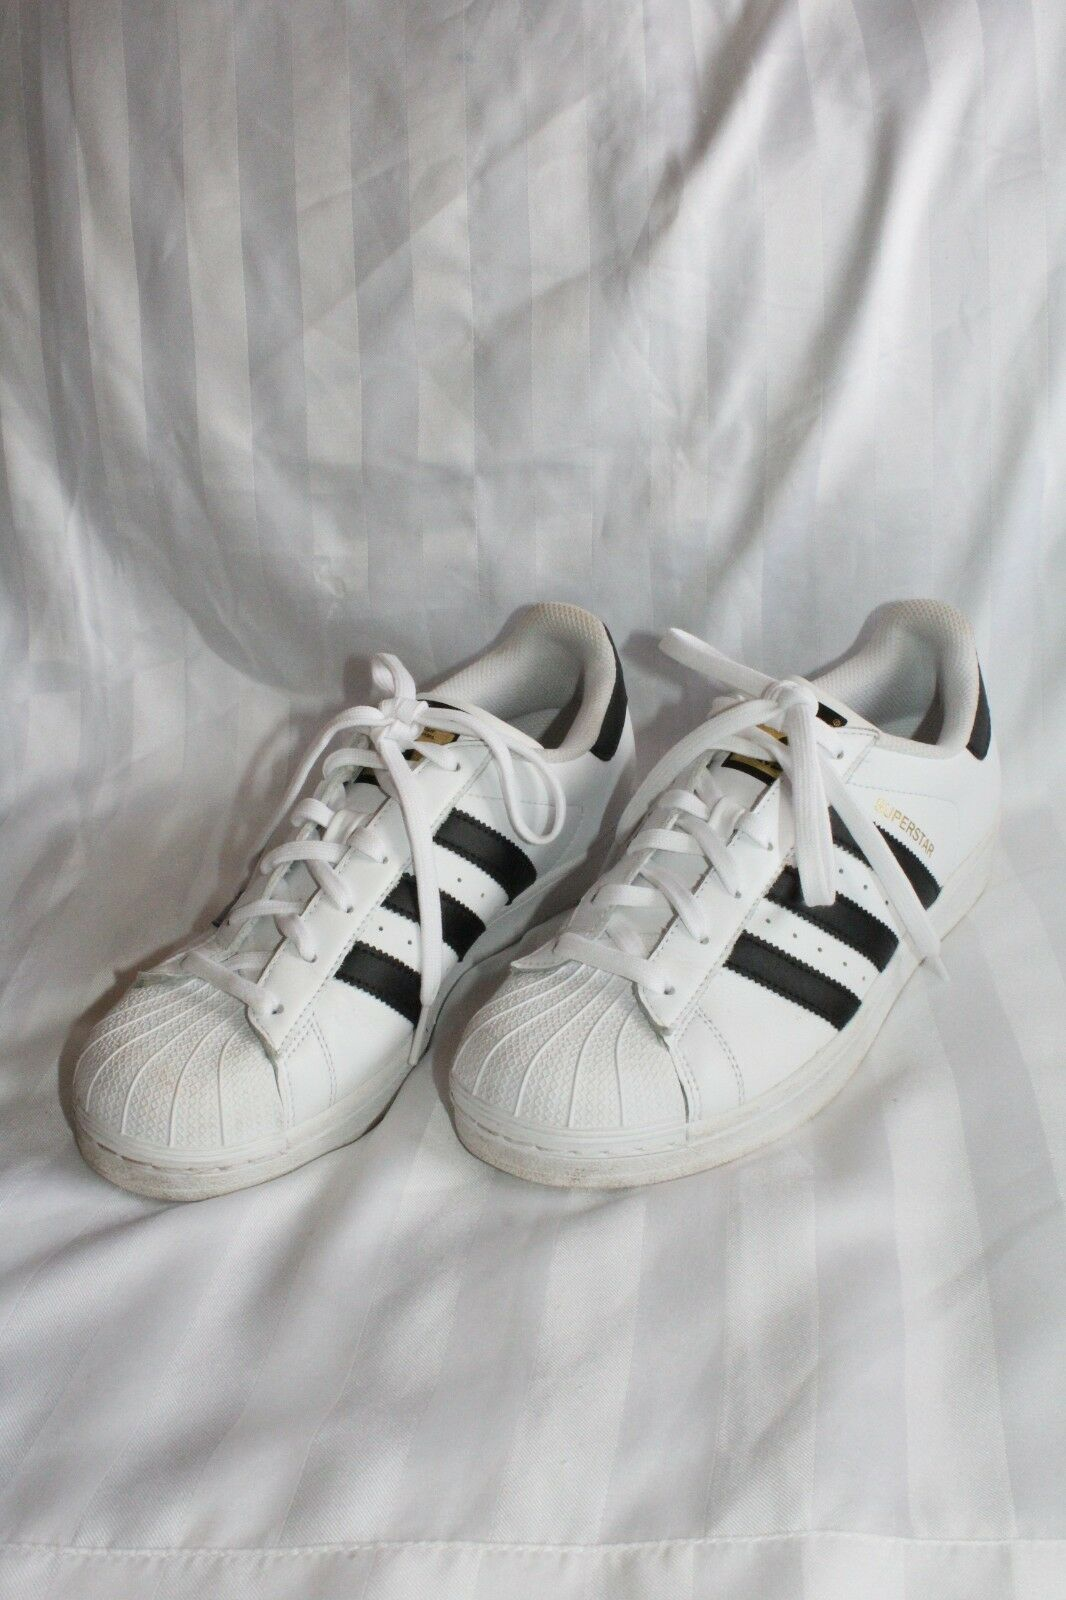 Adidas Black and White Original Superstar Leather Athletic Sneaker shoes Size 8